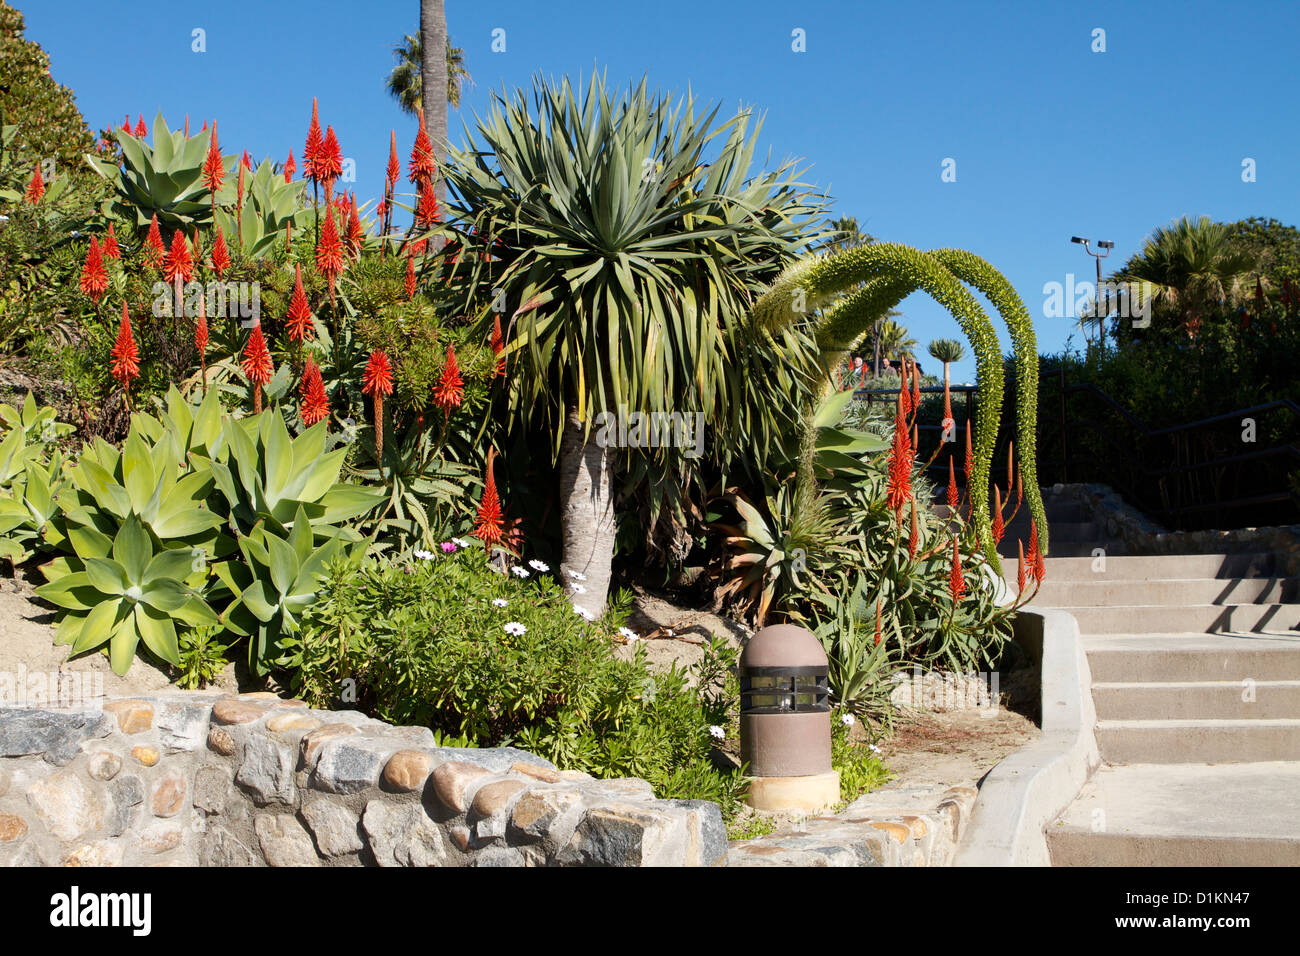 Aloe Vera And Tropical Plants Blooming In Heisler Park Laguna Beach California